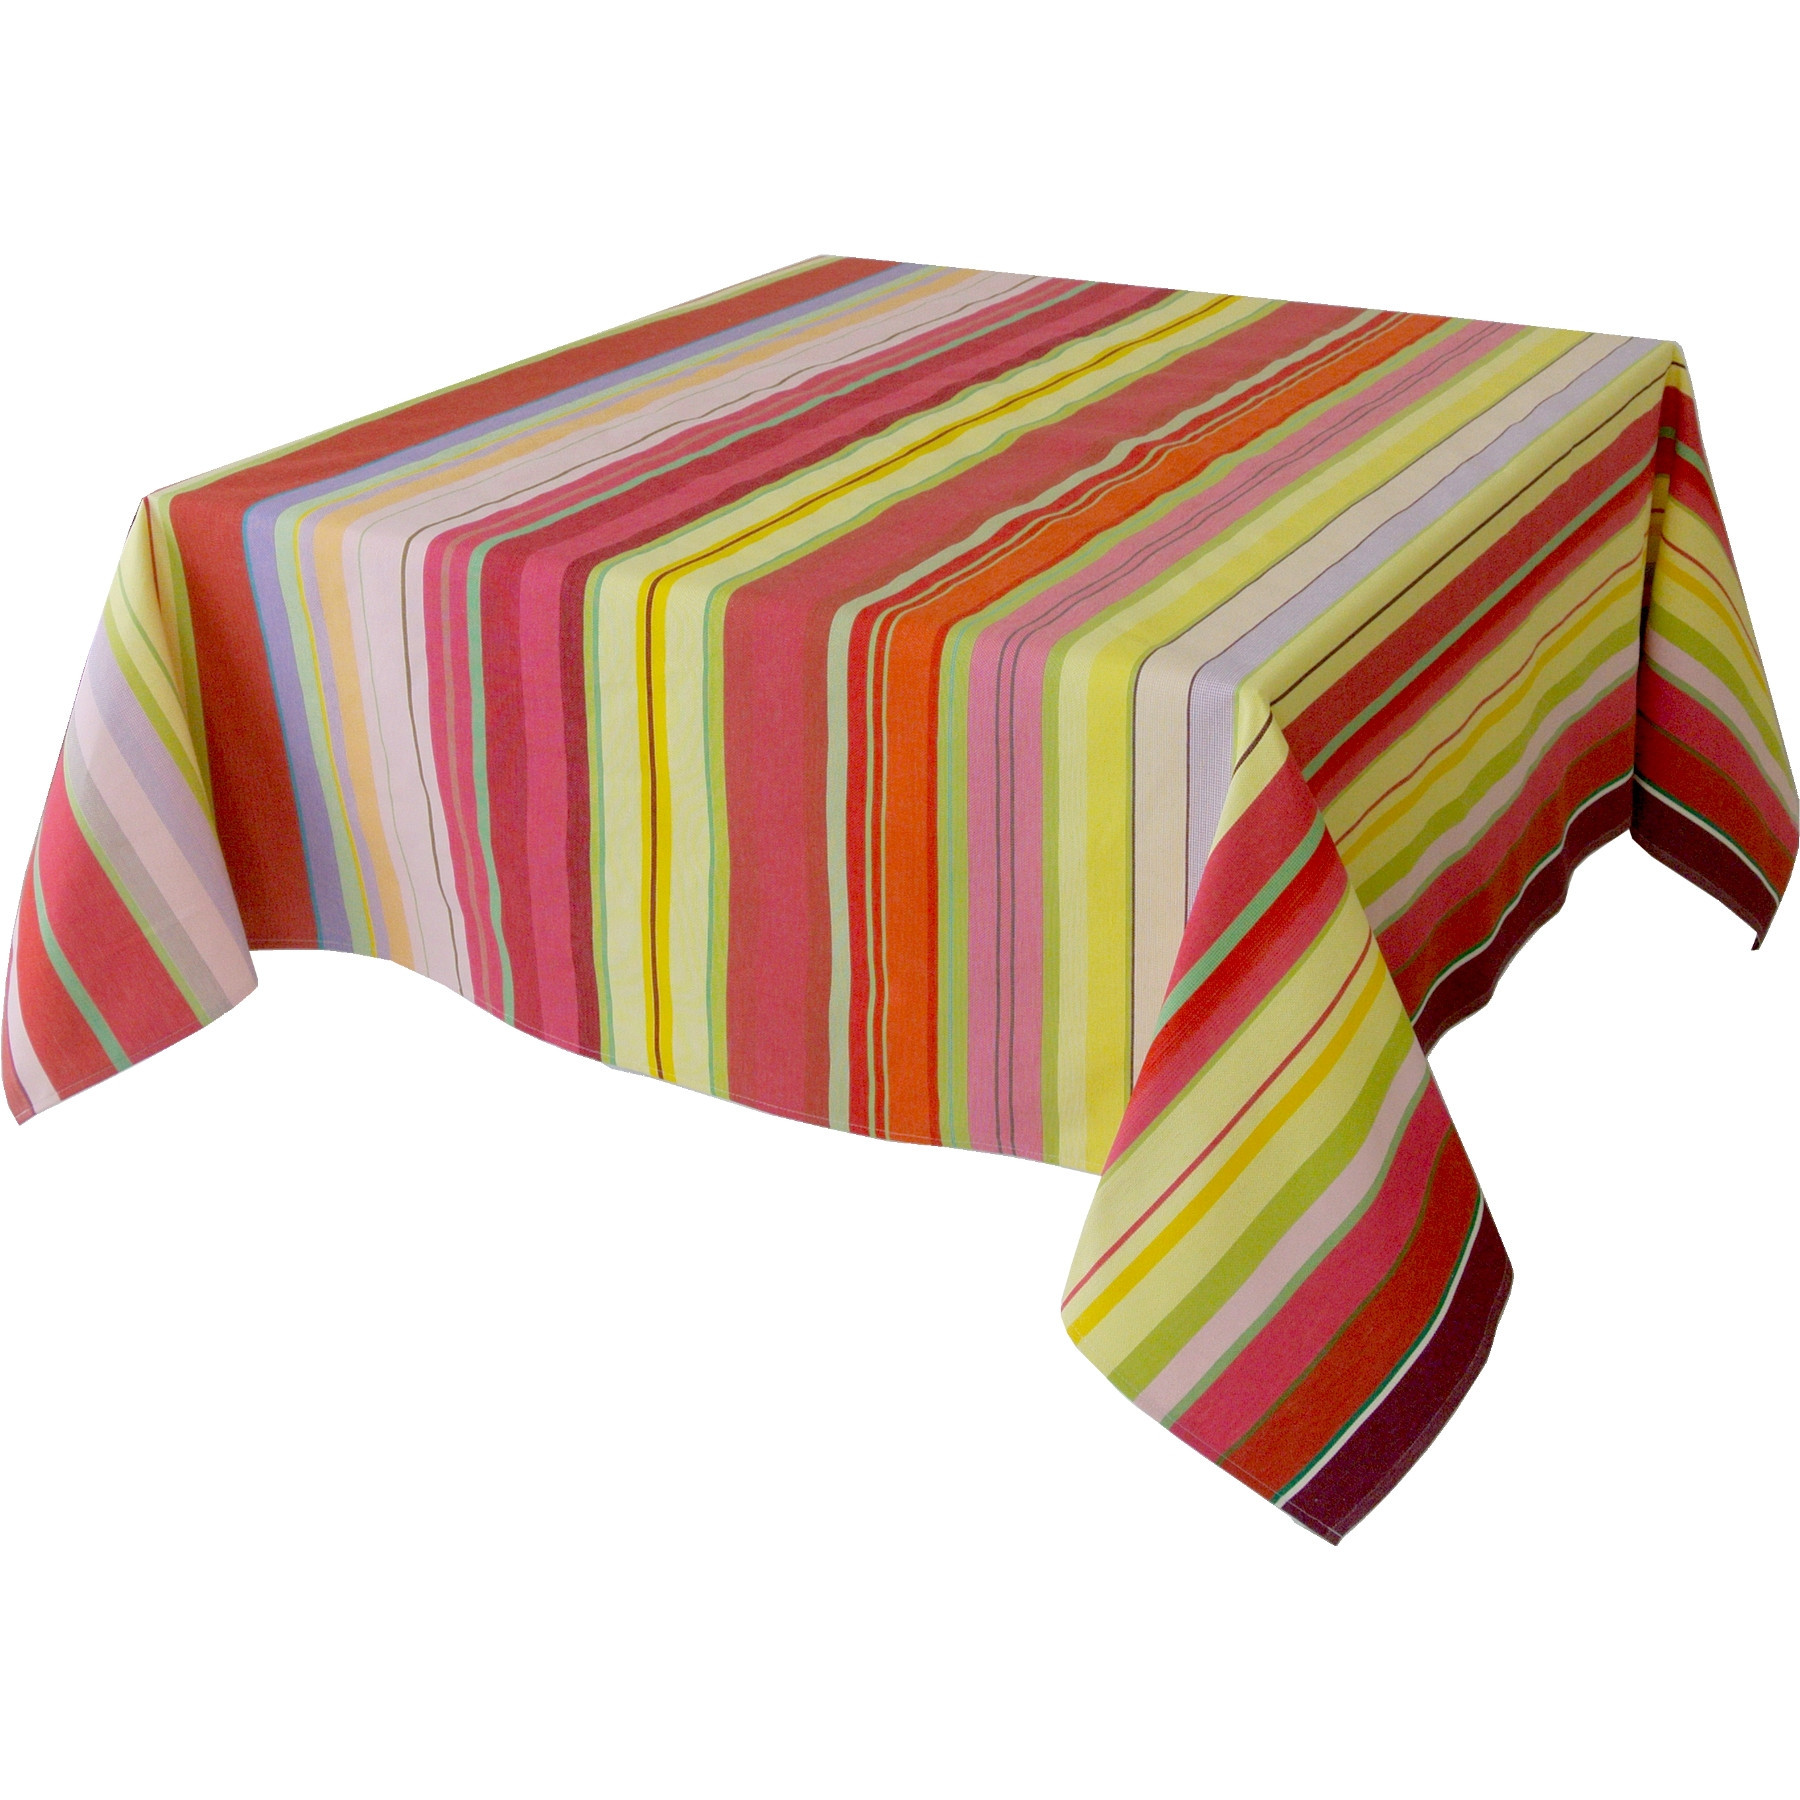 Nappe Rectangulaire Rayée Multicolore - Ceret